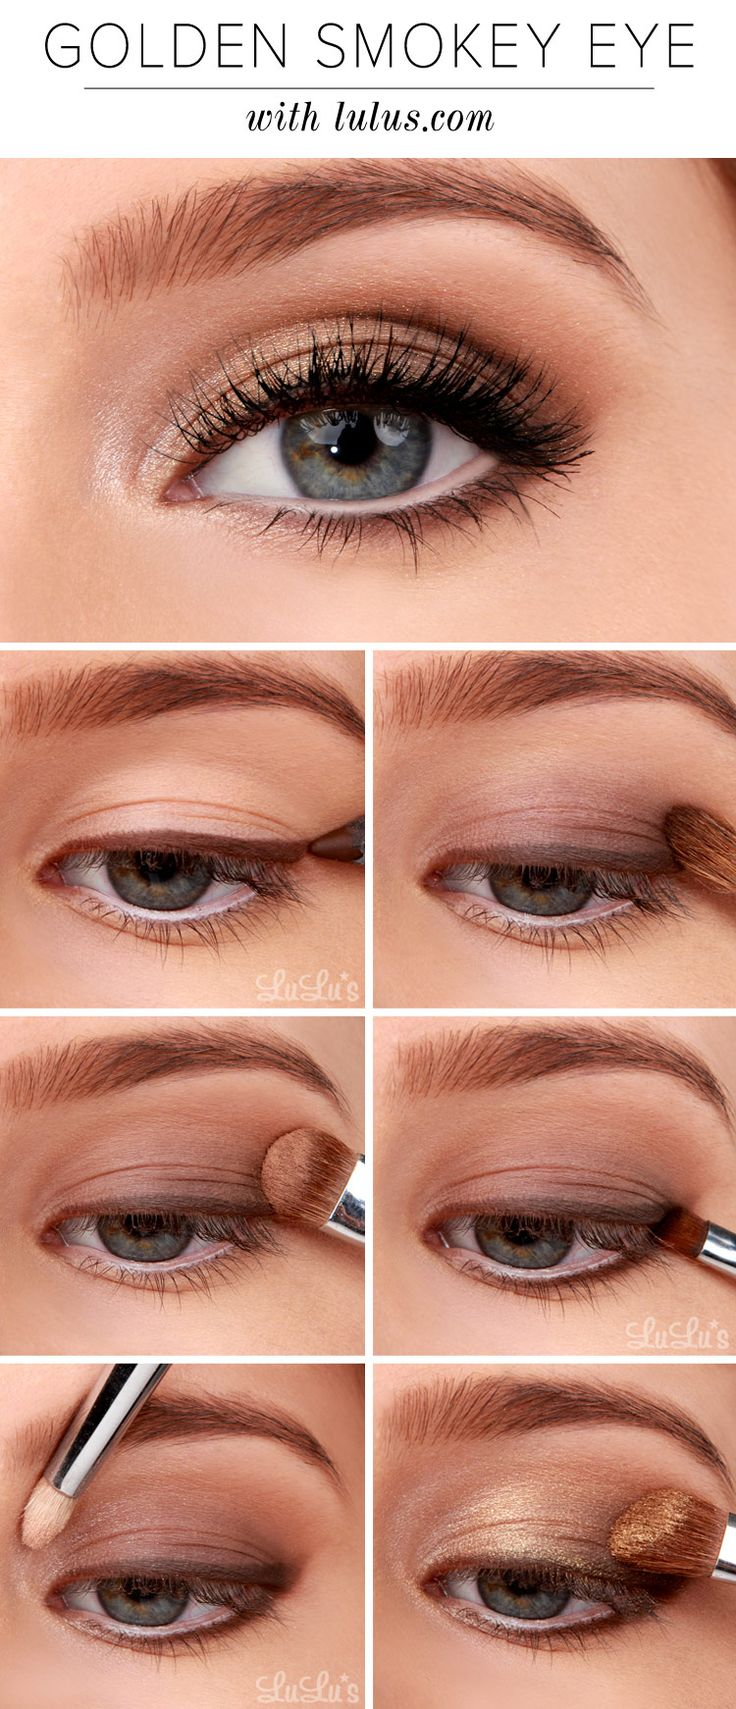 LuLu*s How-To: Golden Smokey Eyeshadow Tutorial - Lulus.com Fashion Blog